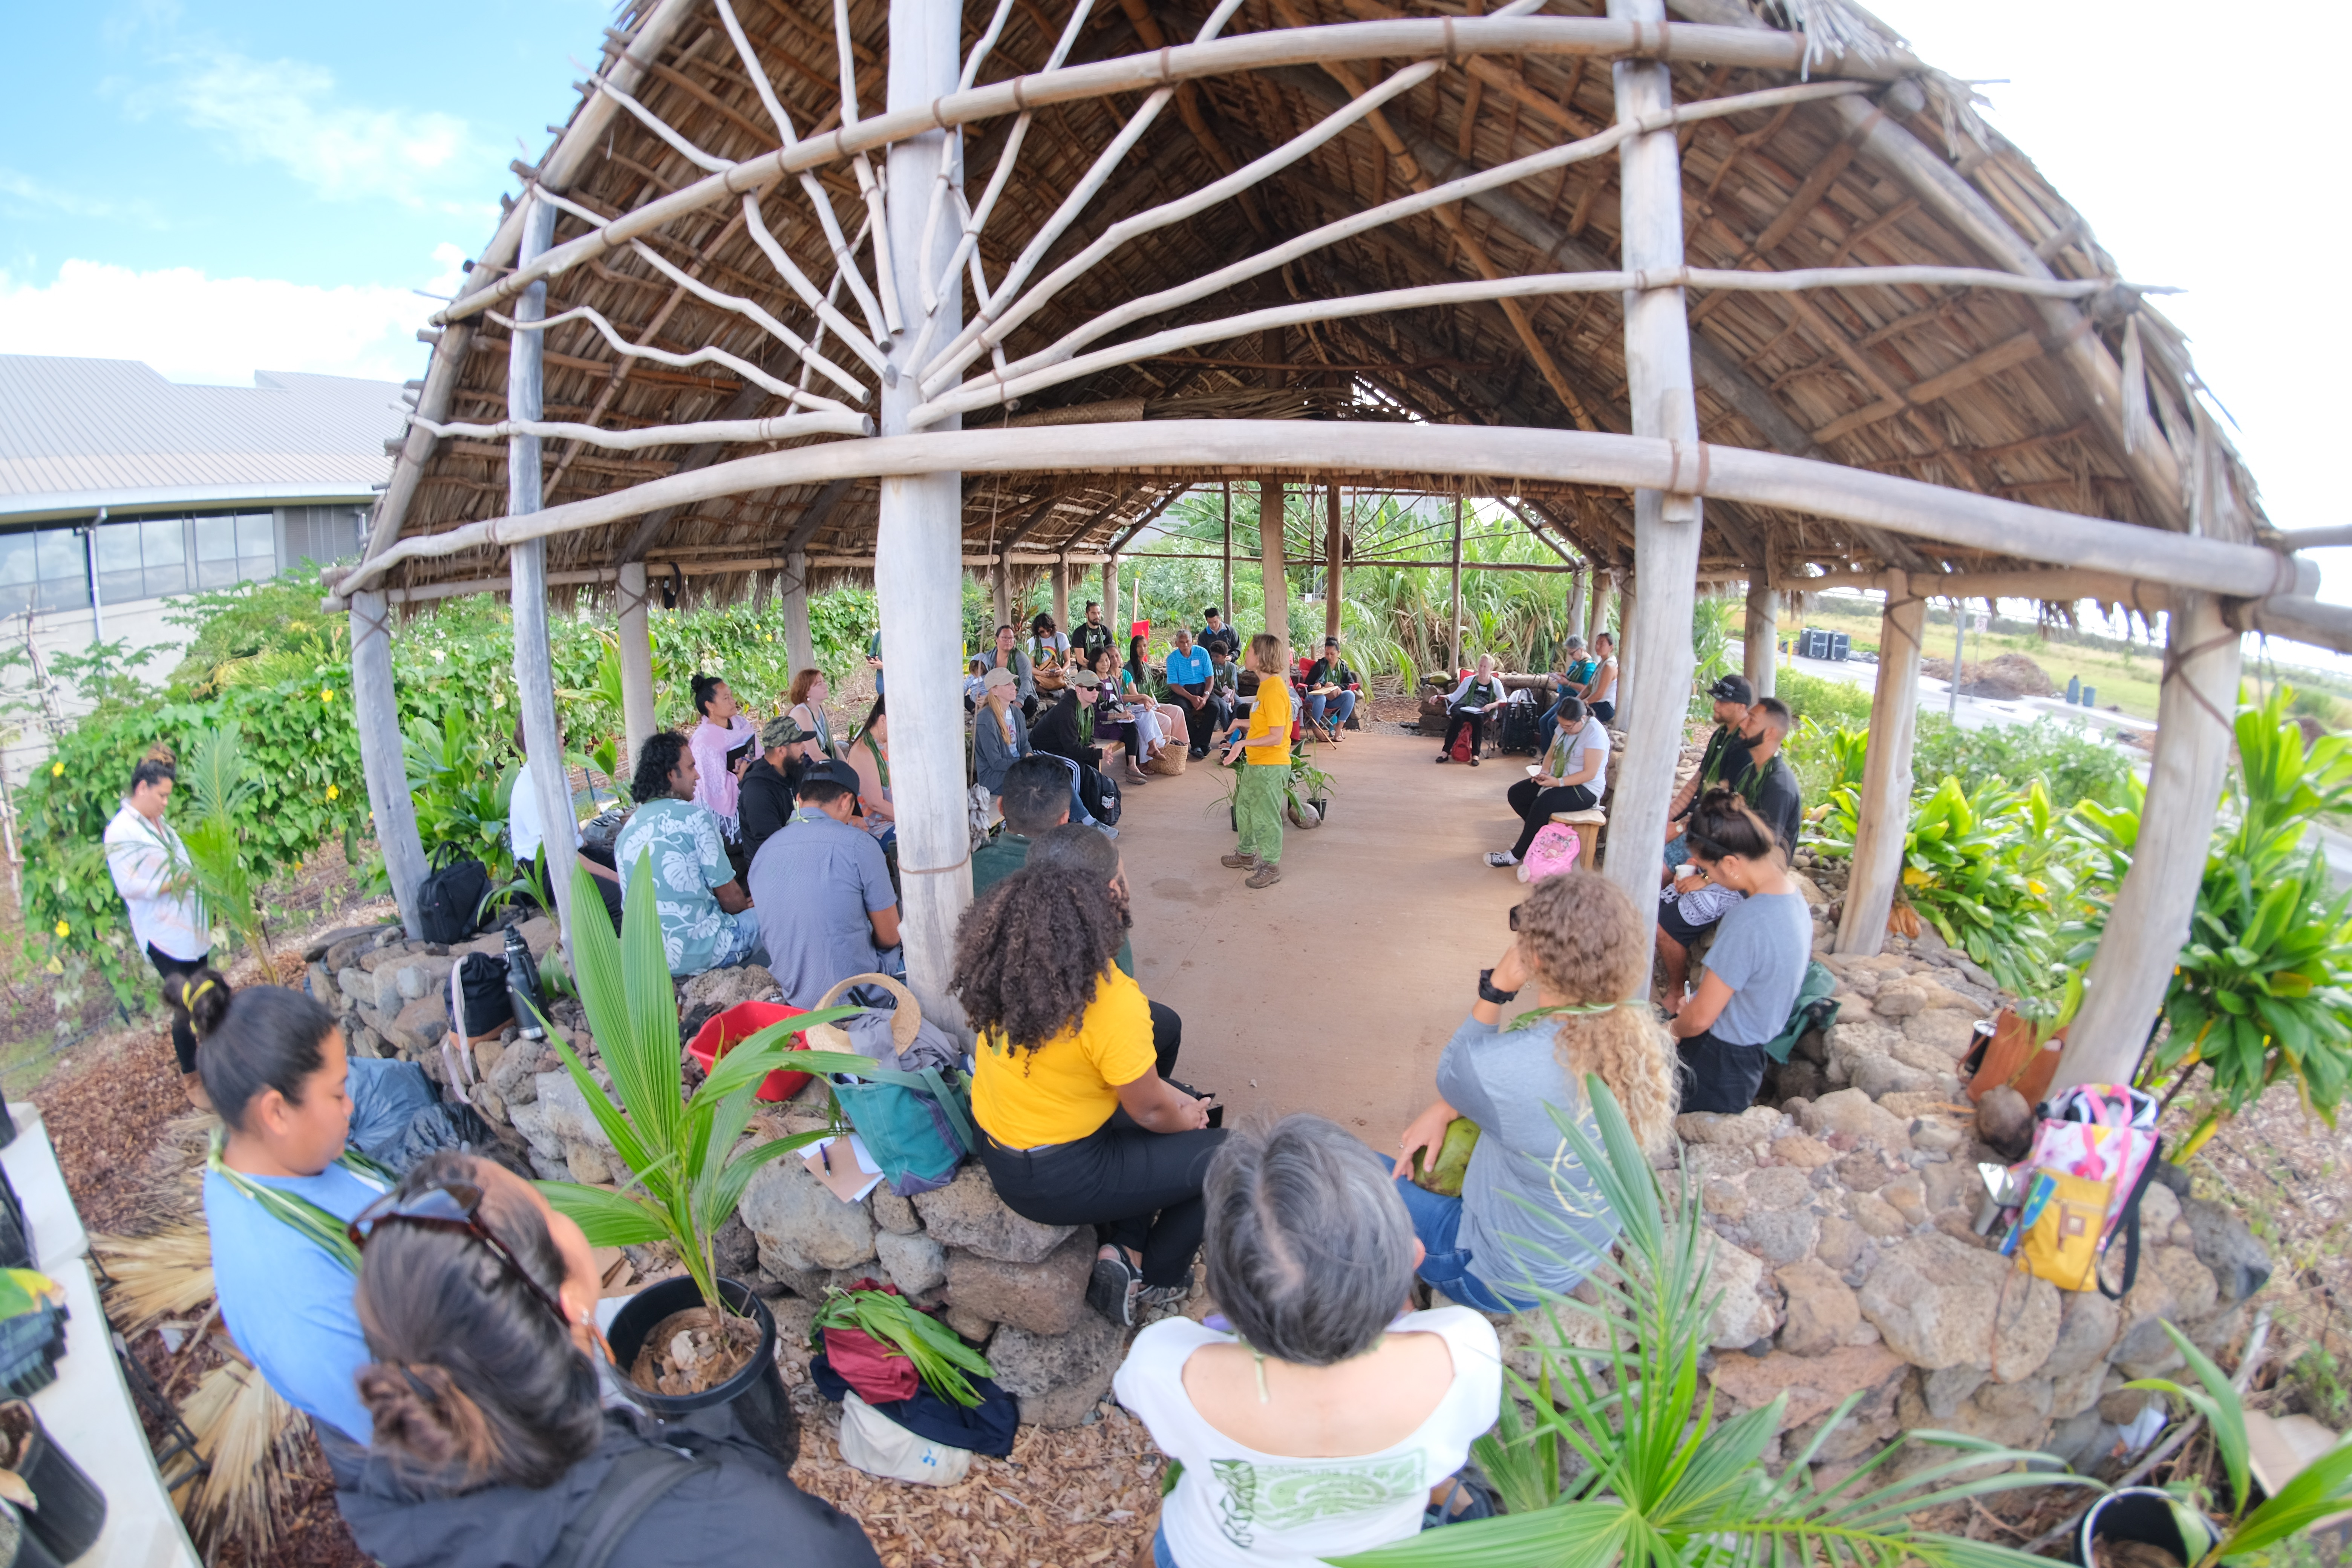 People gathered under the Hale Kuahuokalā at the Student Organic Garden.